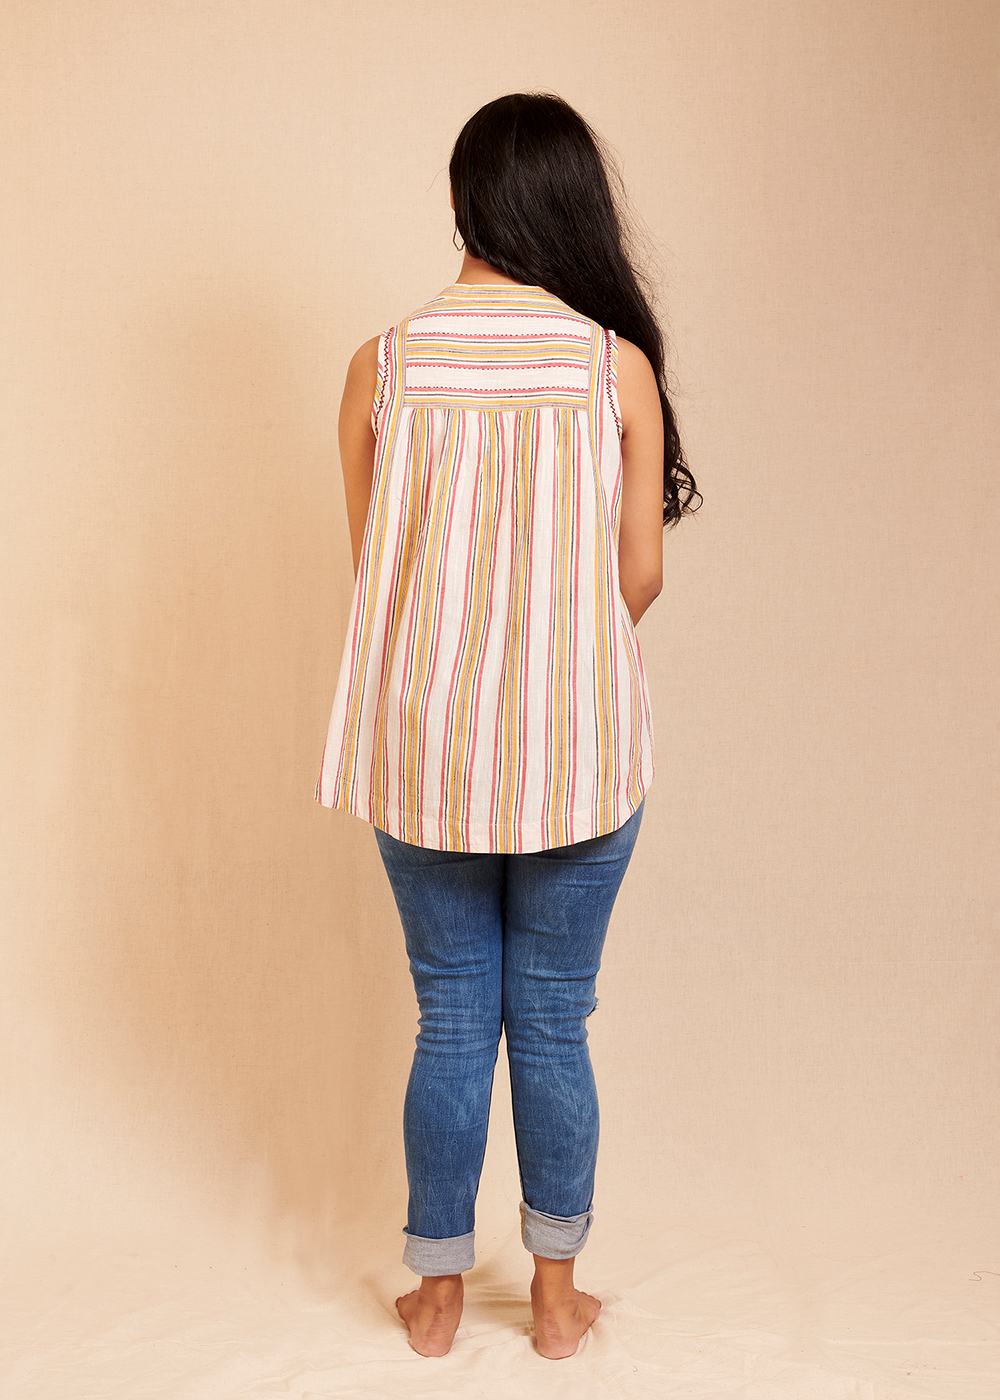 CONNECT - Red and yellow Striped Sleeveless top